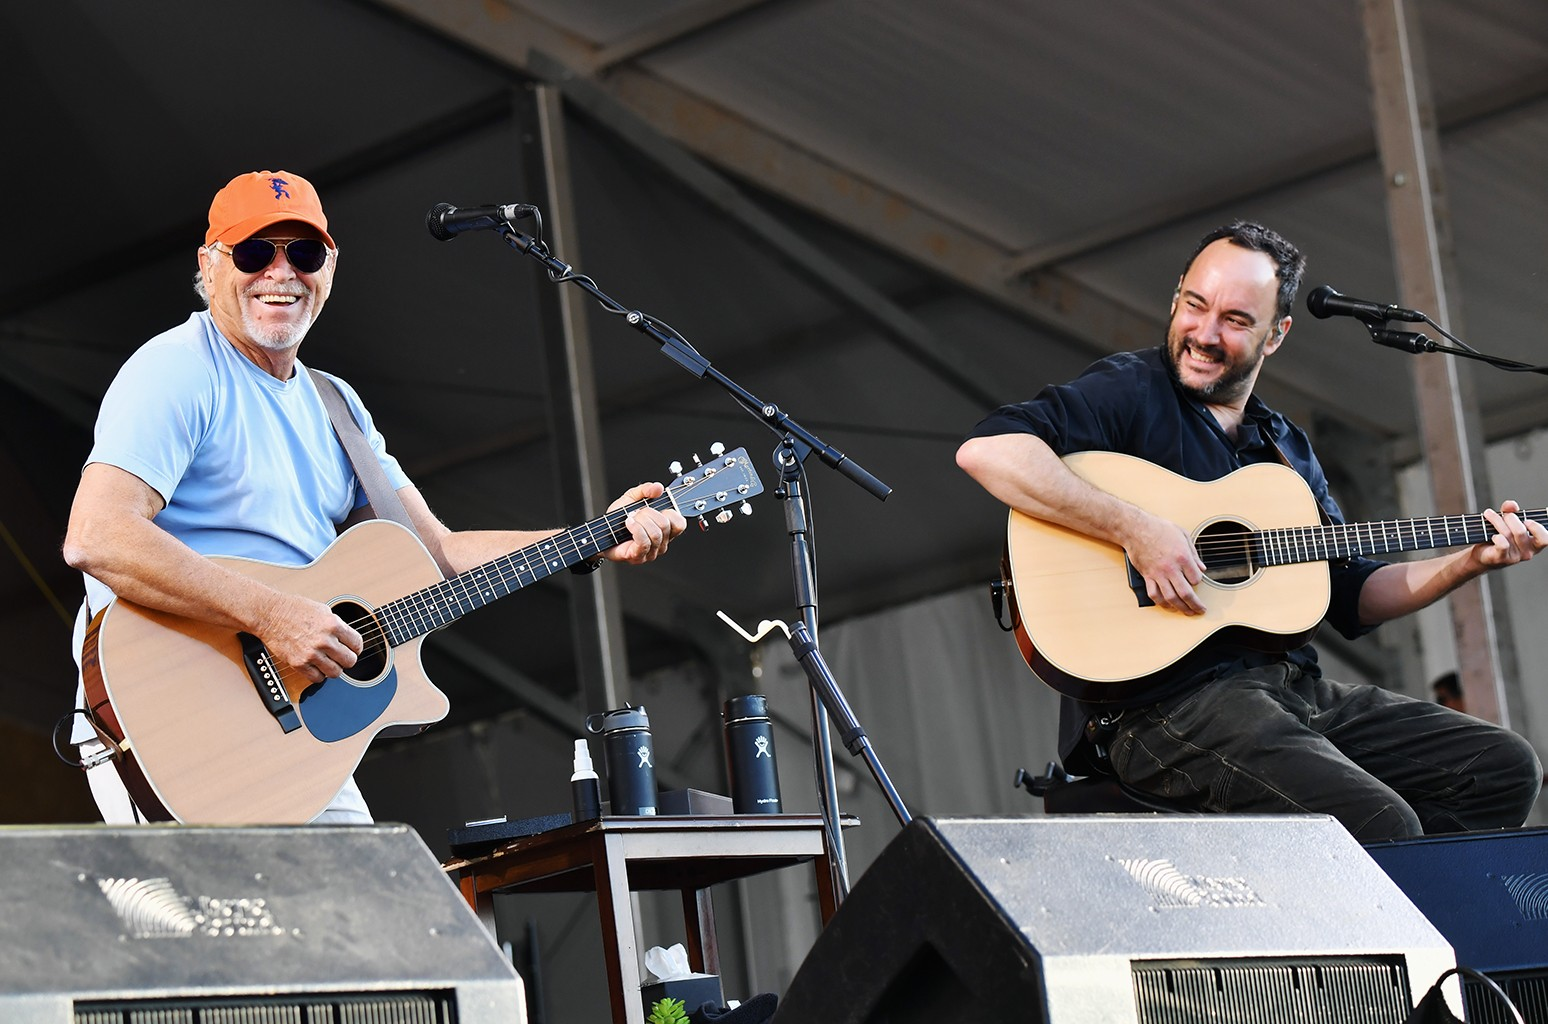 Jimmy Buffet and Dave Matthews perform onstage during day 5 of the 2017 New Orleans Jazz & Heritage Festival at Fair Grounds Race Course on May 5, 2017 in New Orleans.